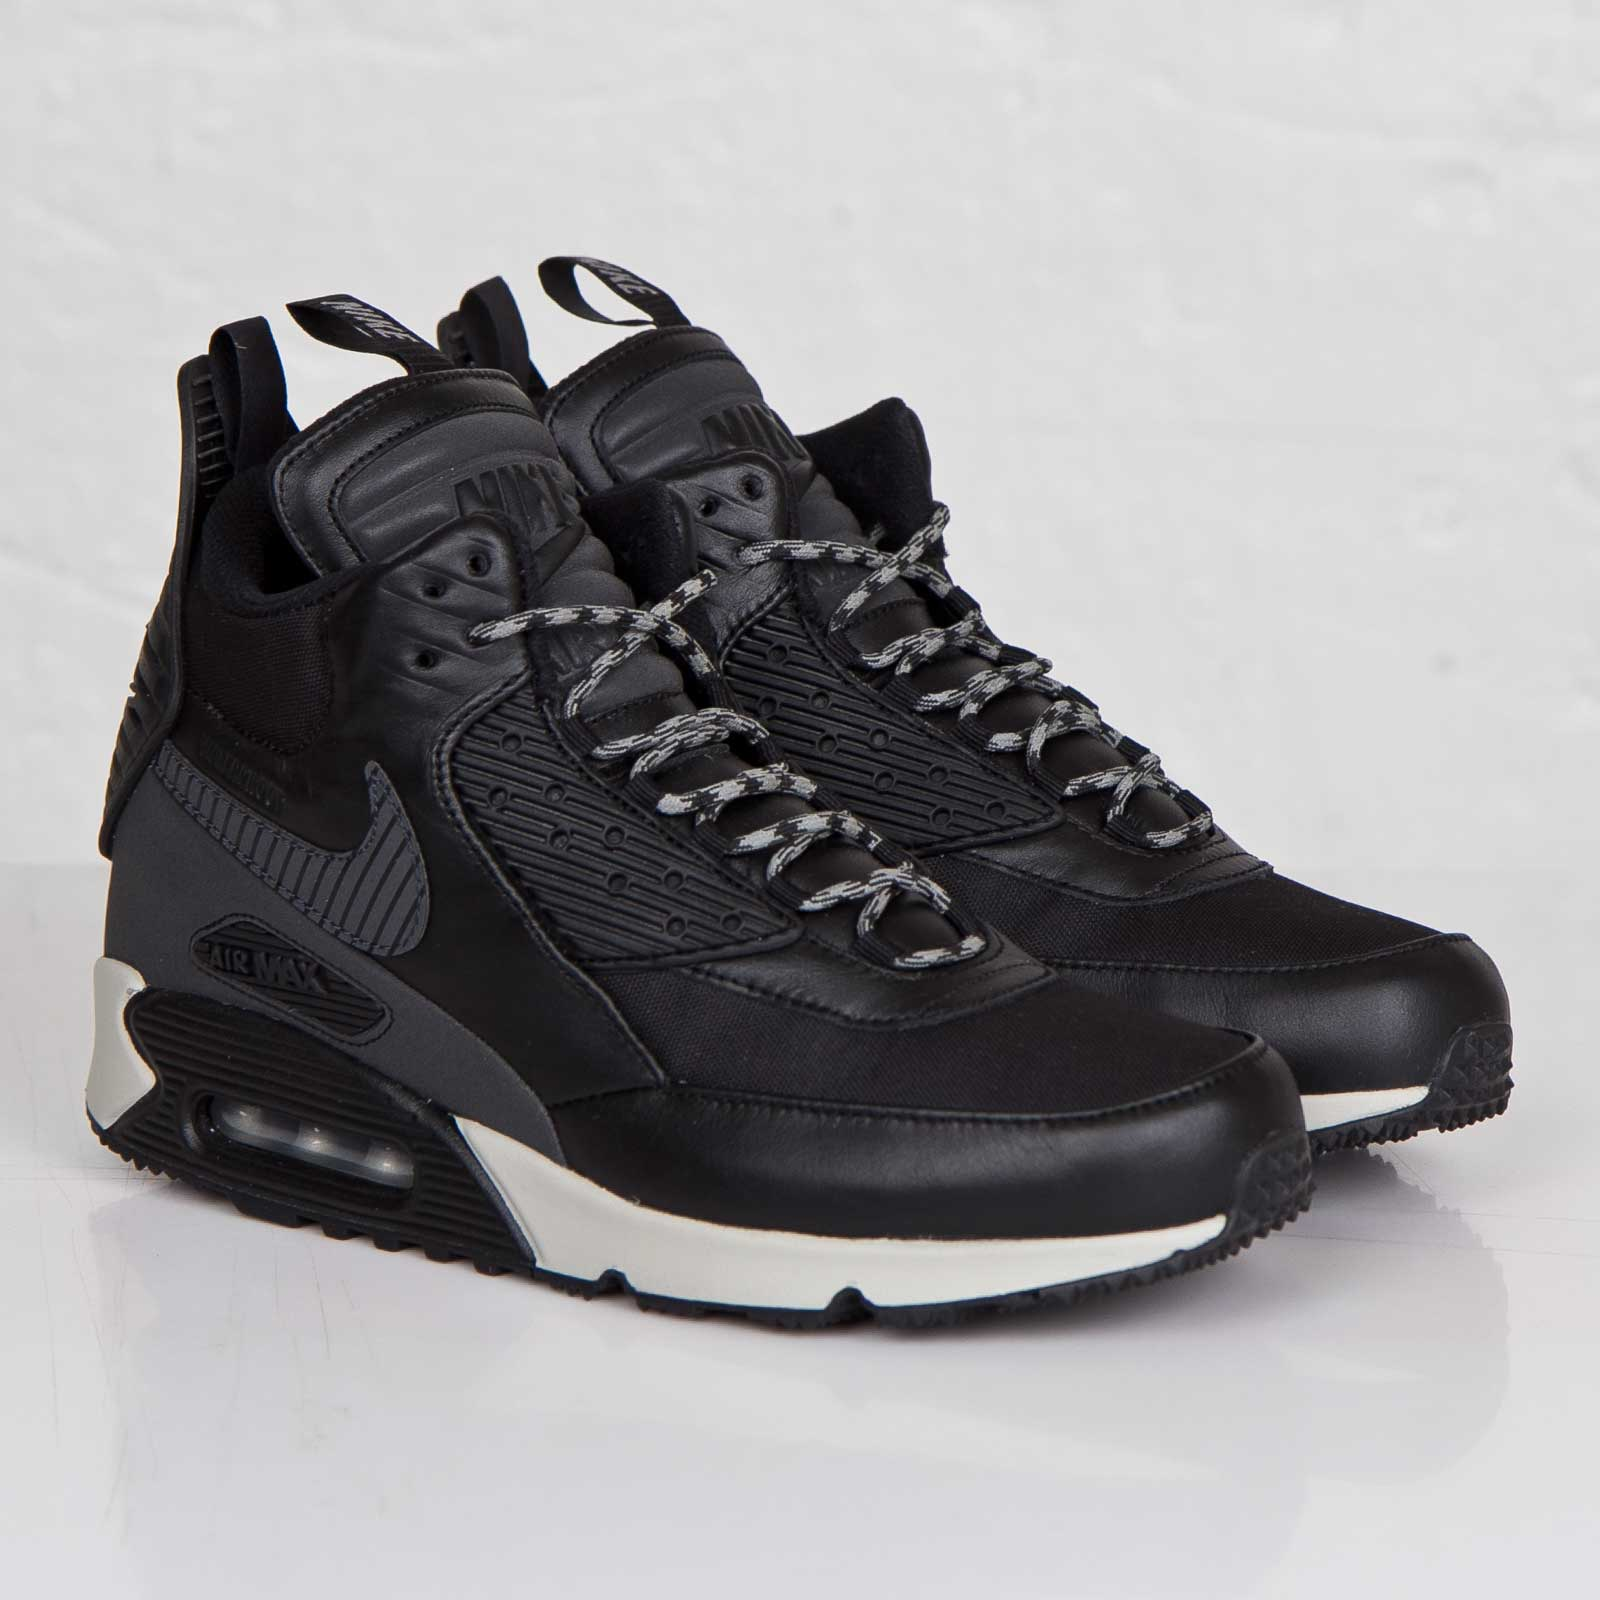 Nike Air Max 90 Sneakerboot Winter - 684714-001 - Sneakersnstuff ... 0d0051d05